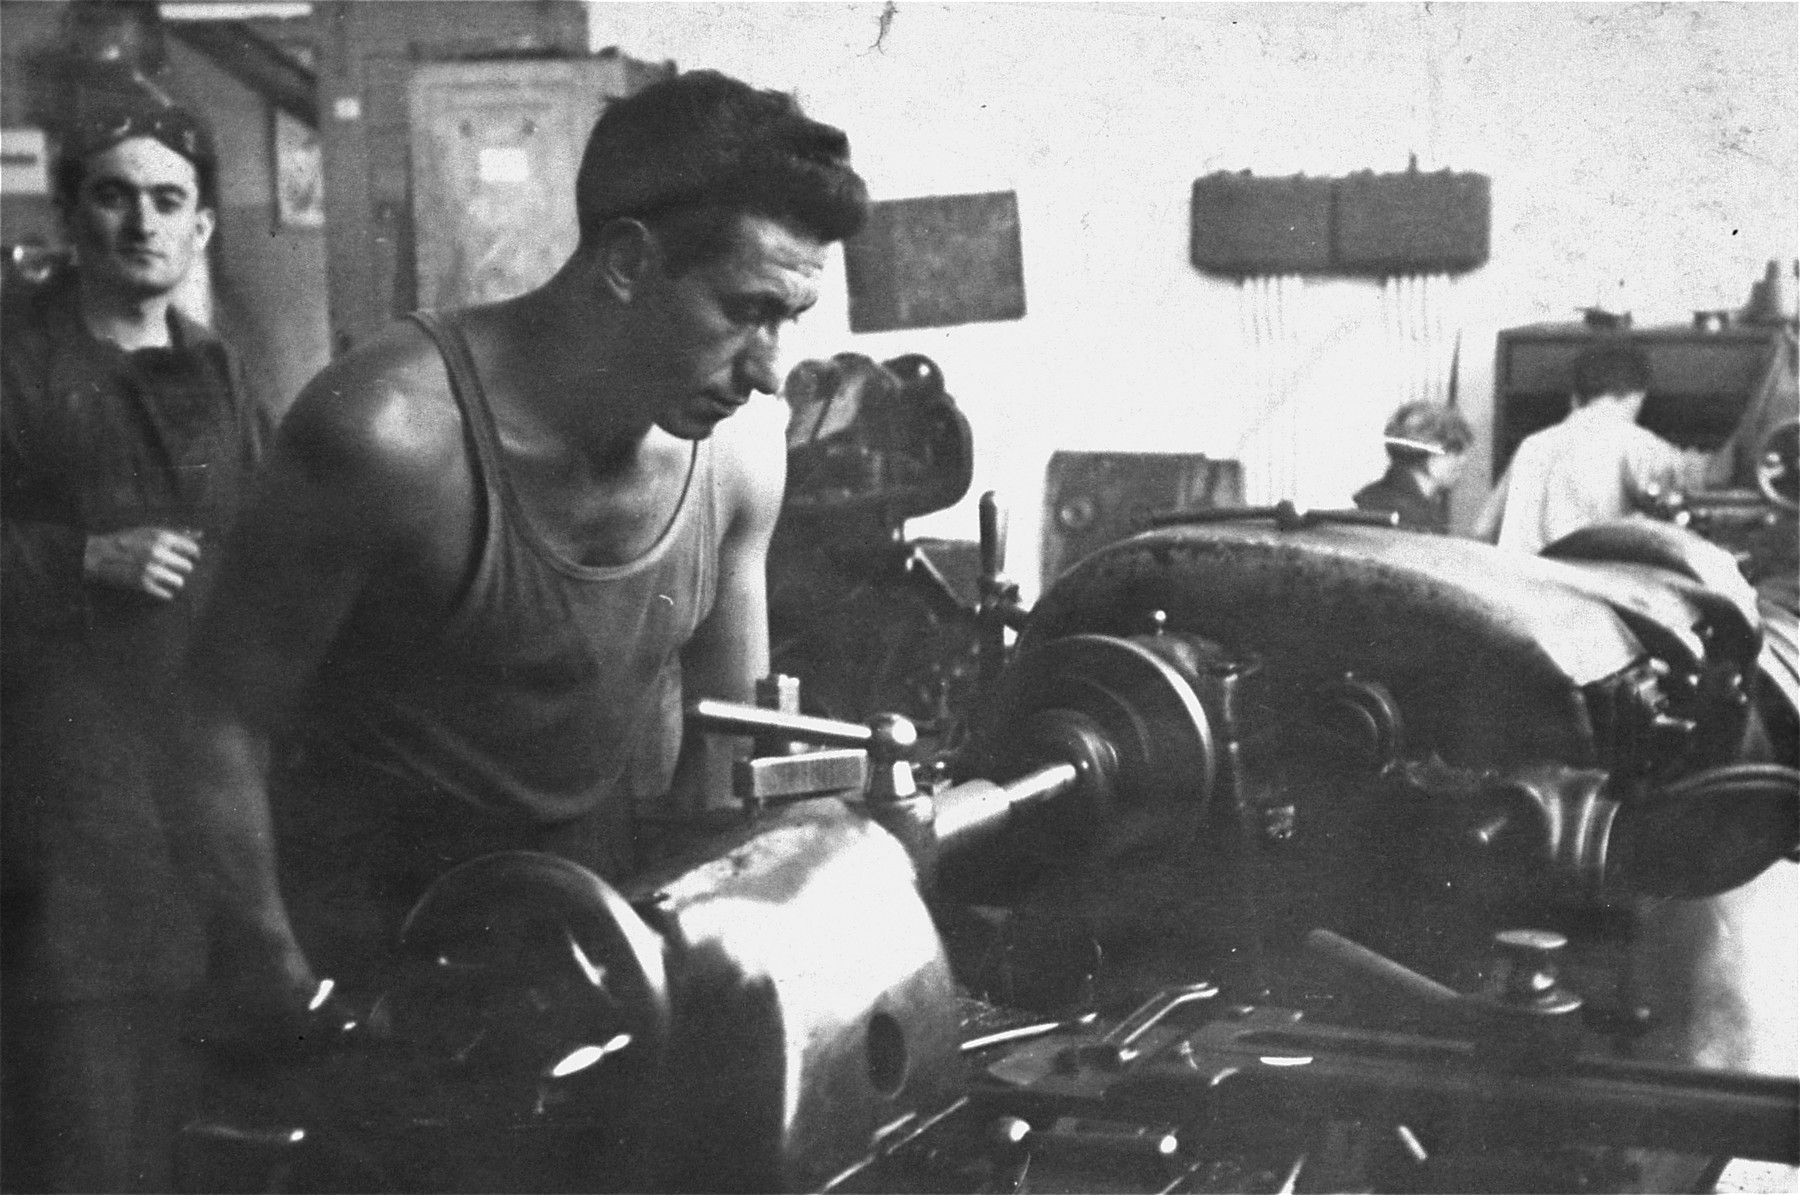 Emil Herskowicz trains at an ORT machine repair shop in the Landsberg displaced persons camp.